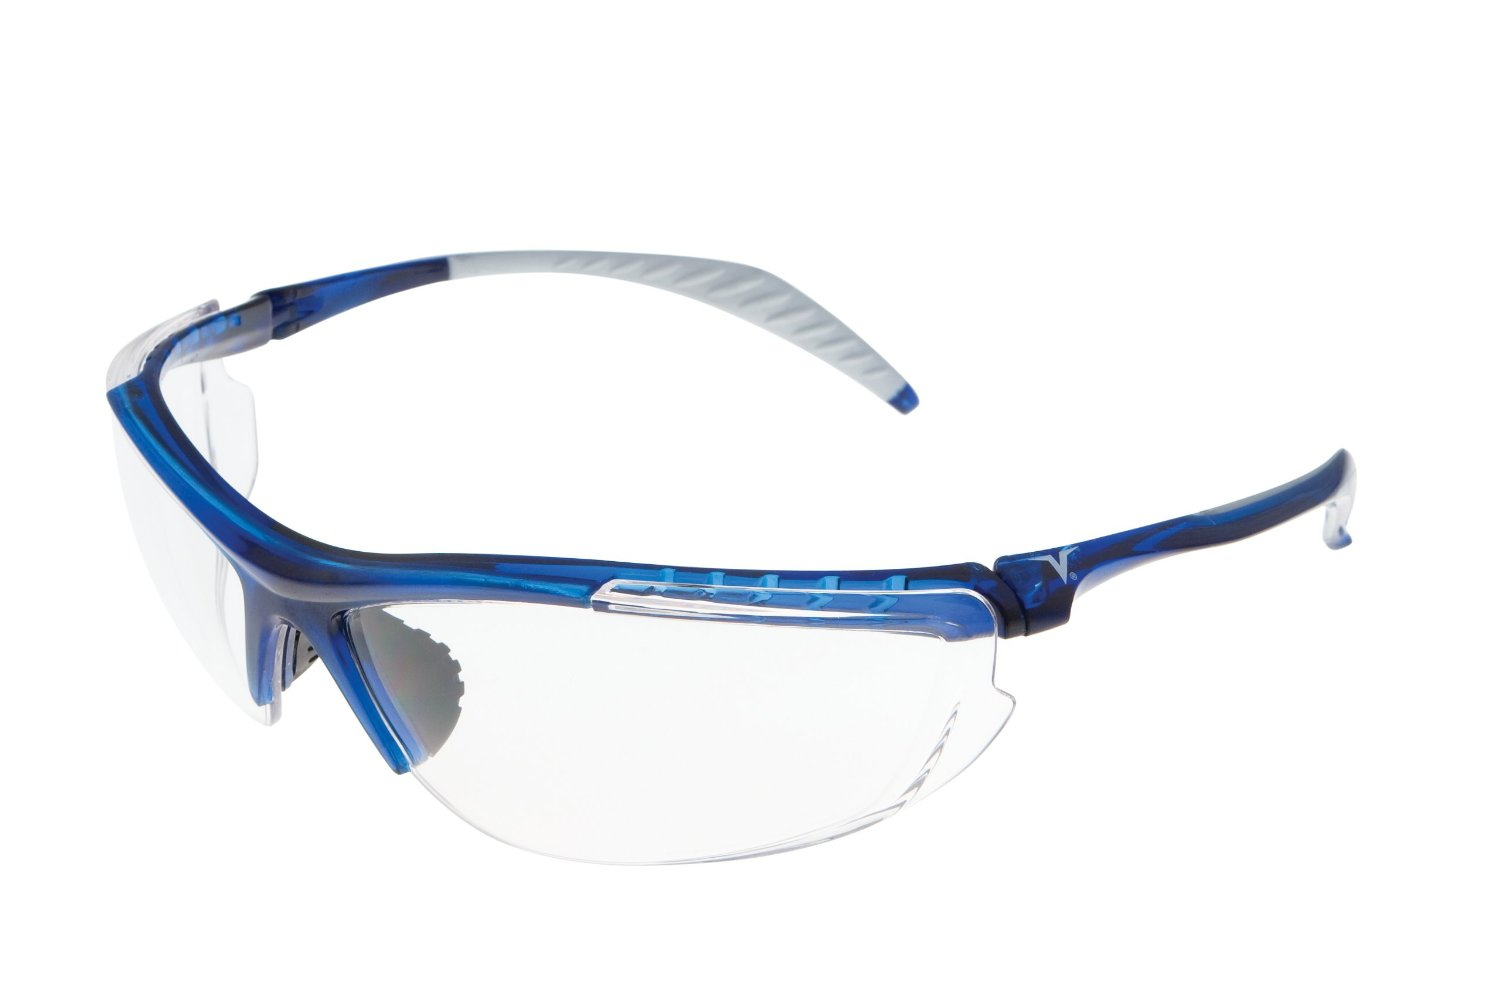 Encon Wraparound Veratti 307 Safety Glasses, Clear Lens, Cool Blue Frame